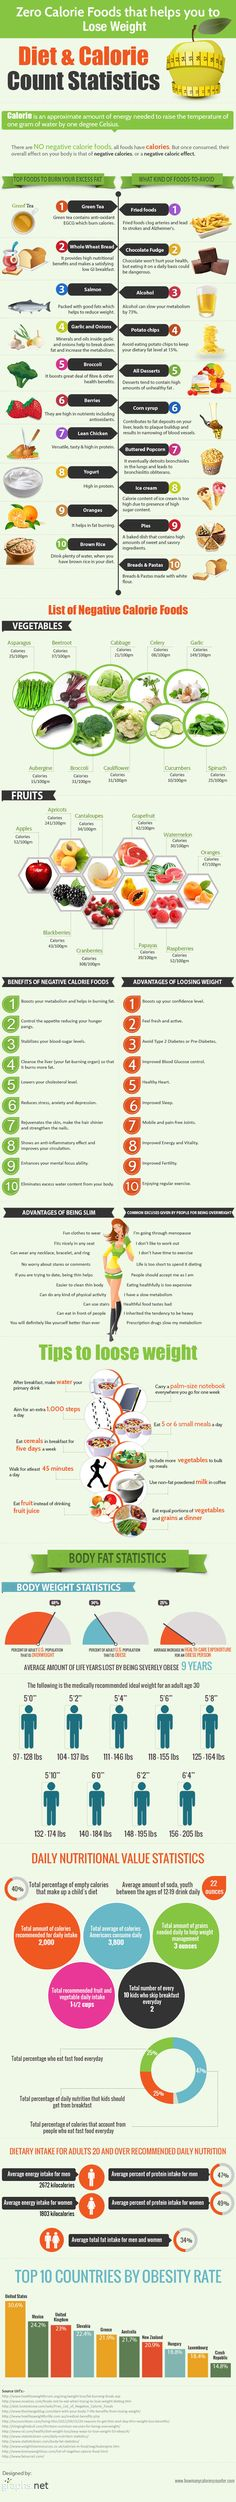 Zero calorie foods that help you lose weight [Infographic] - http://www.urbanewomen.com/zero-calorie-foods-that-help-you-to-lose-weight.html